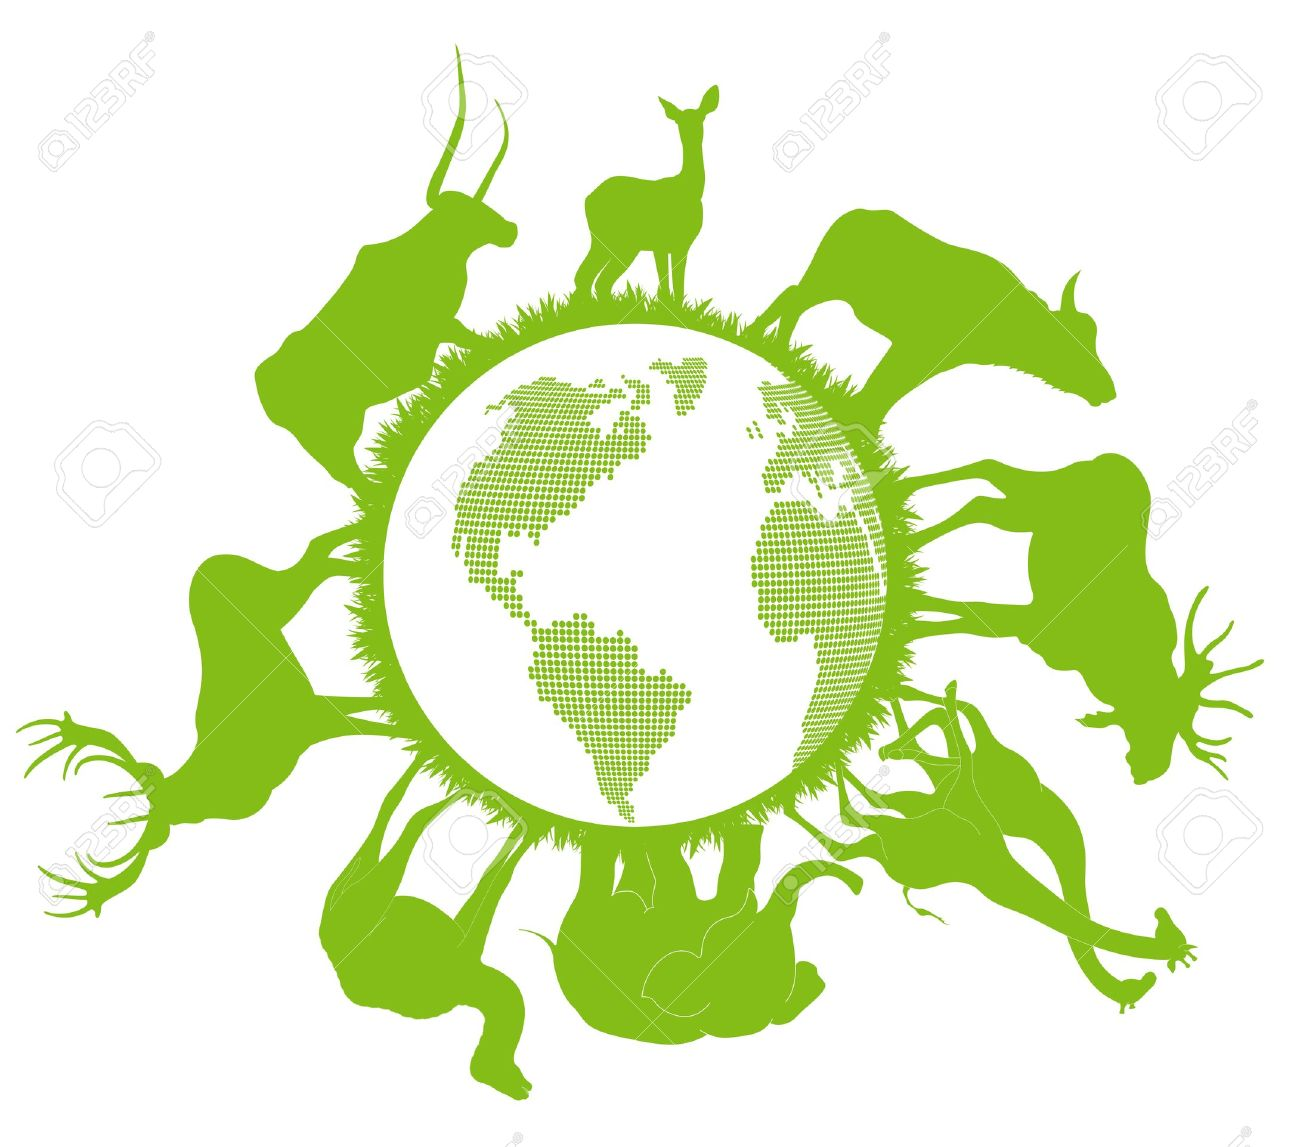 Animal Planet Vector Background Ecology Concept Royalty Free.